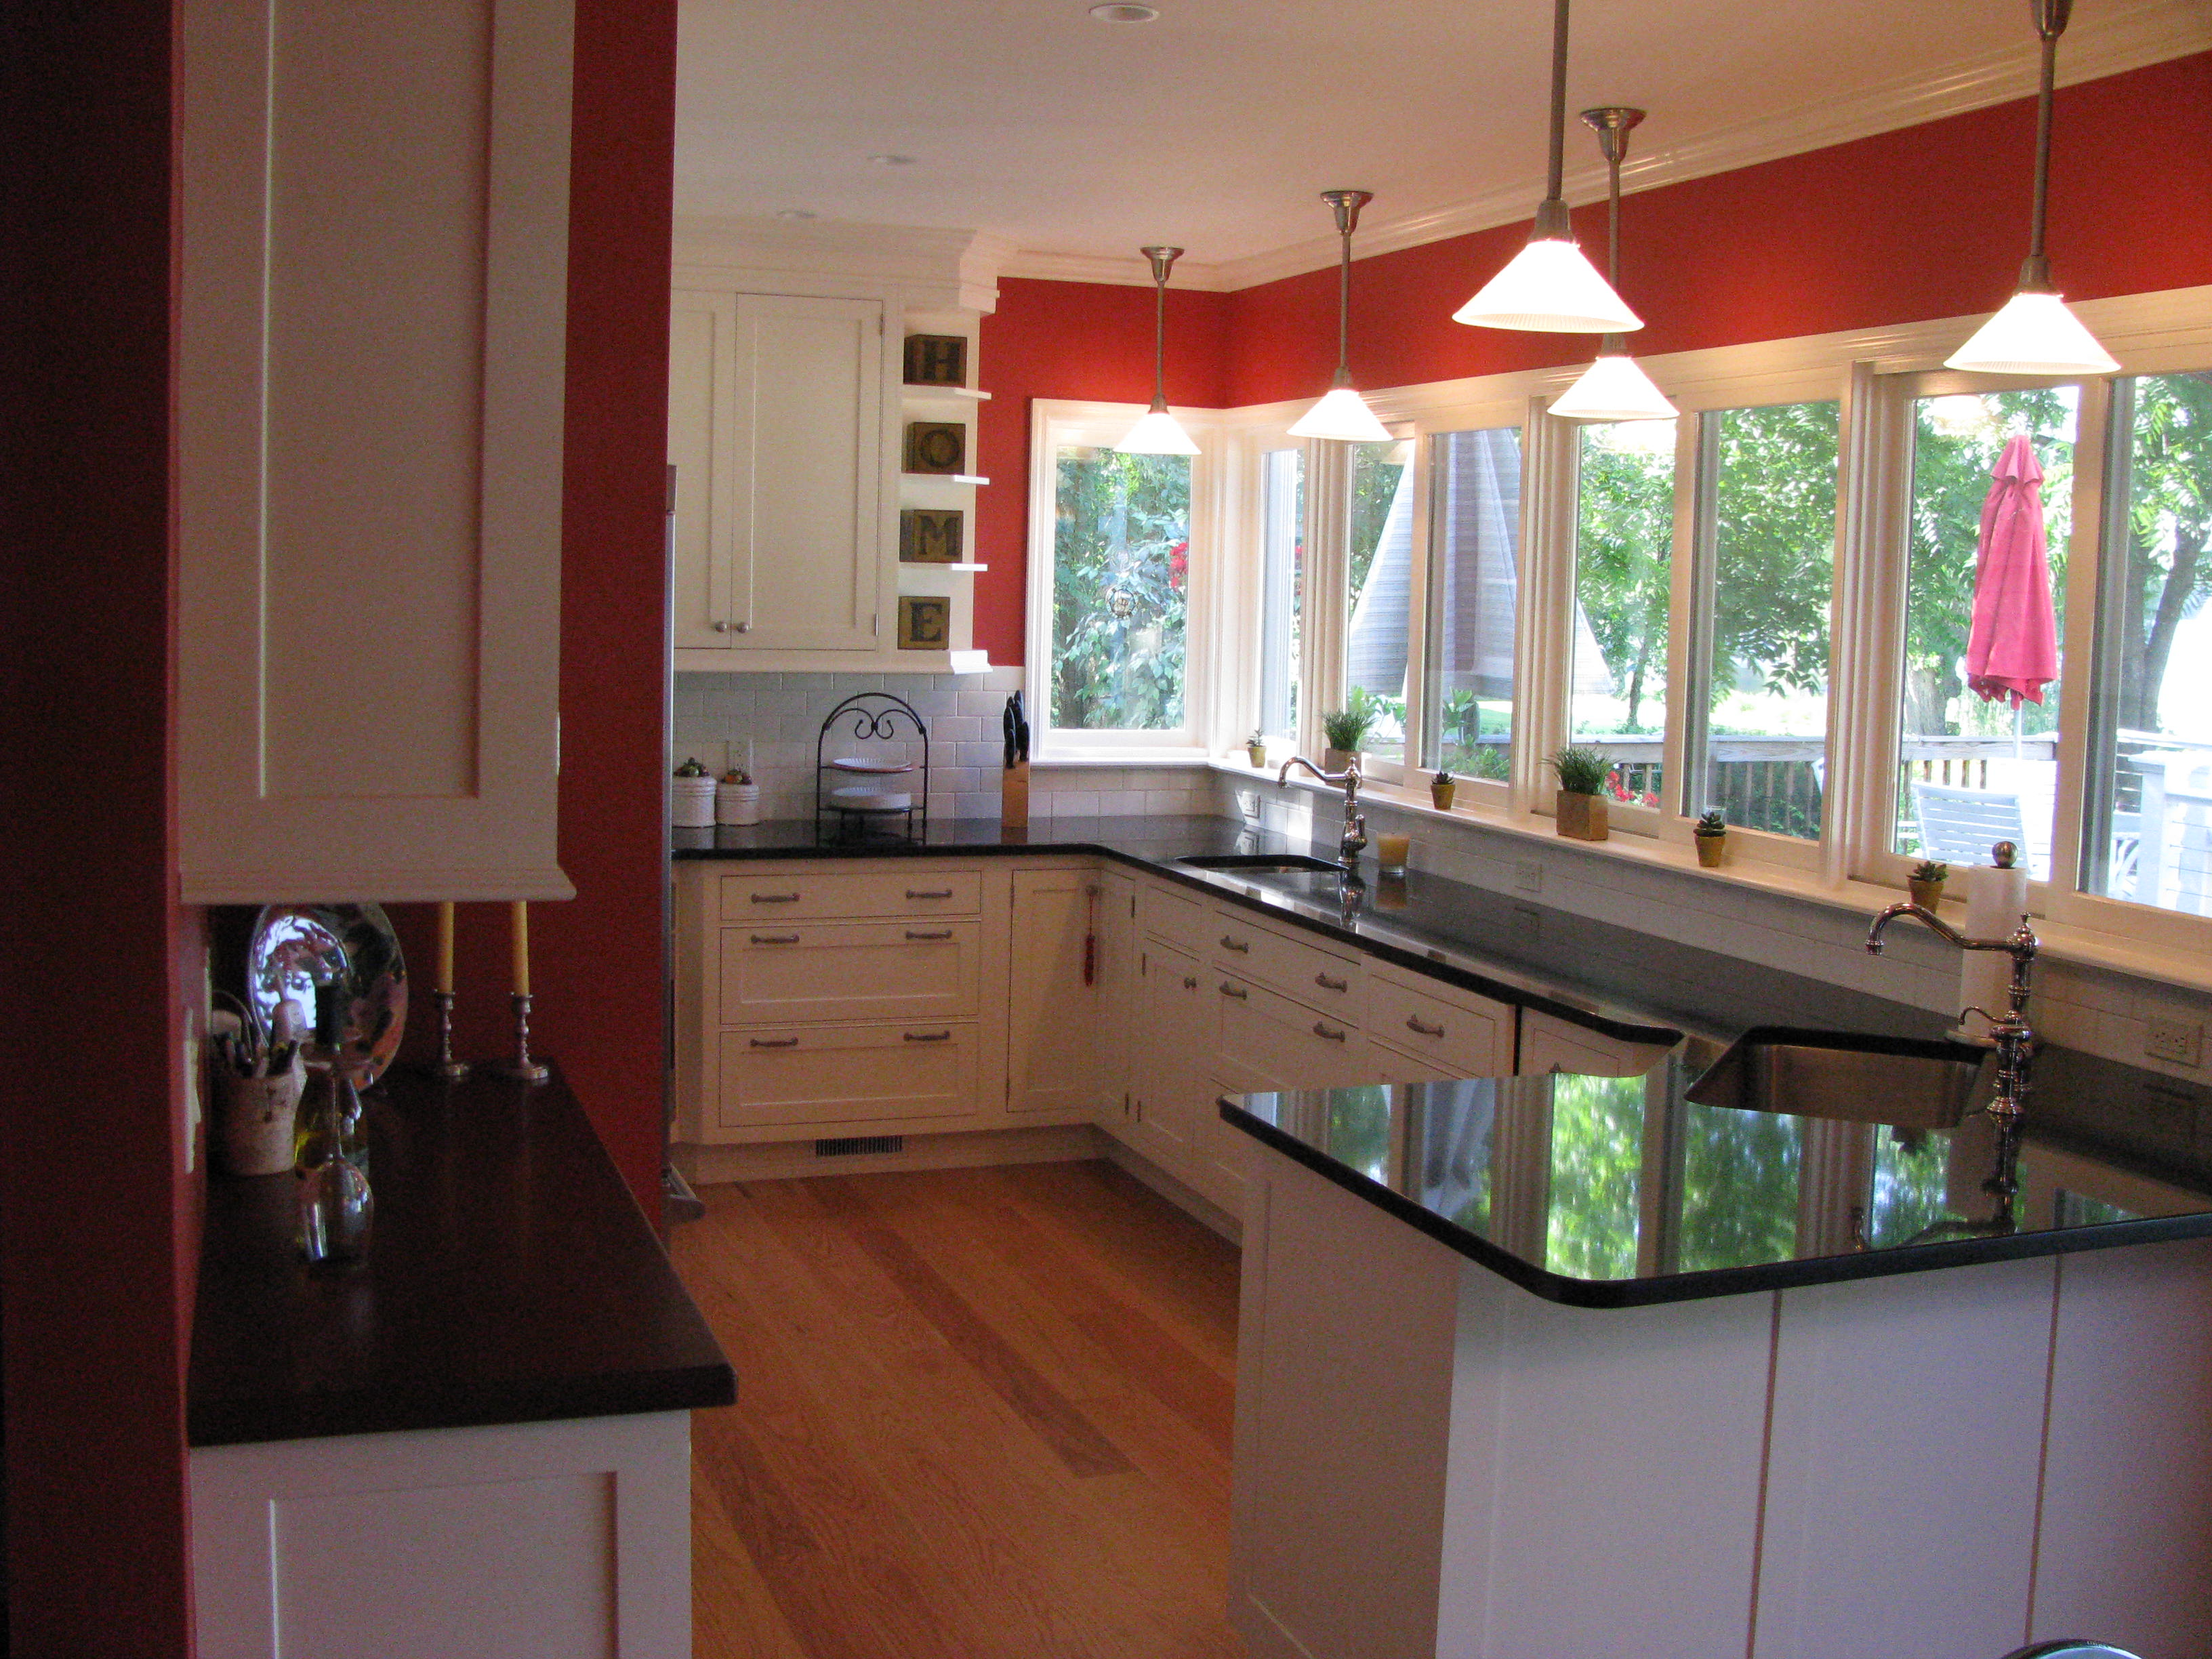 Mohawk Kitchens image 0